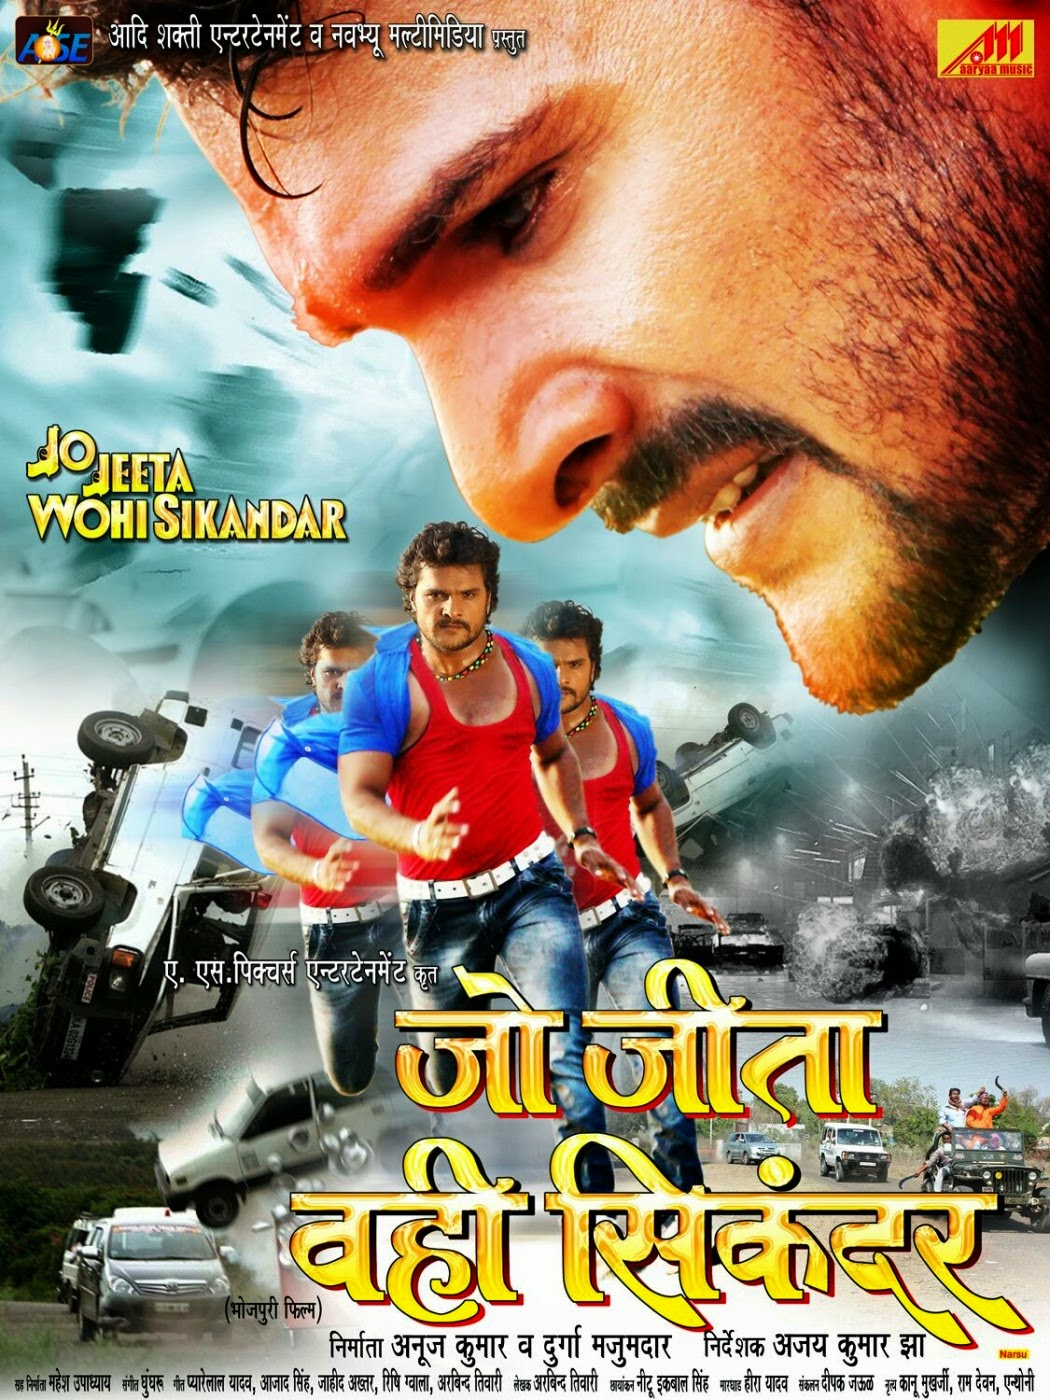 Bhojpuri movie Jo Jeeta Wohi Sikander poster 2015, kesari lal yadav first look pics, wallpaper